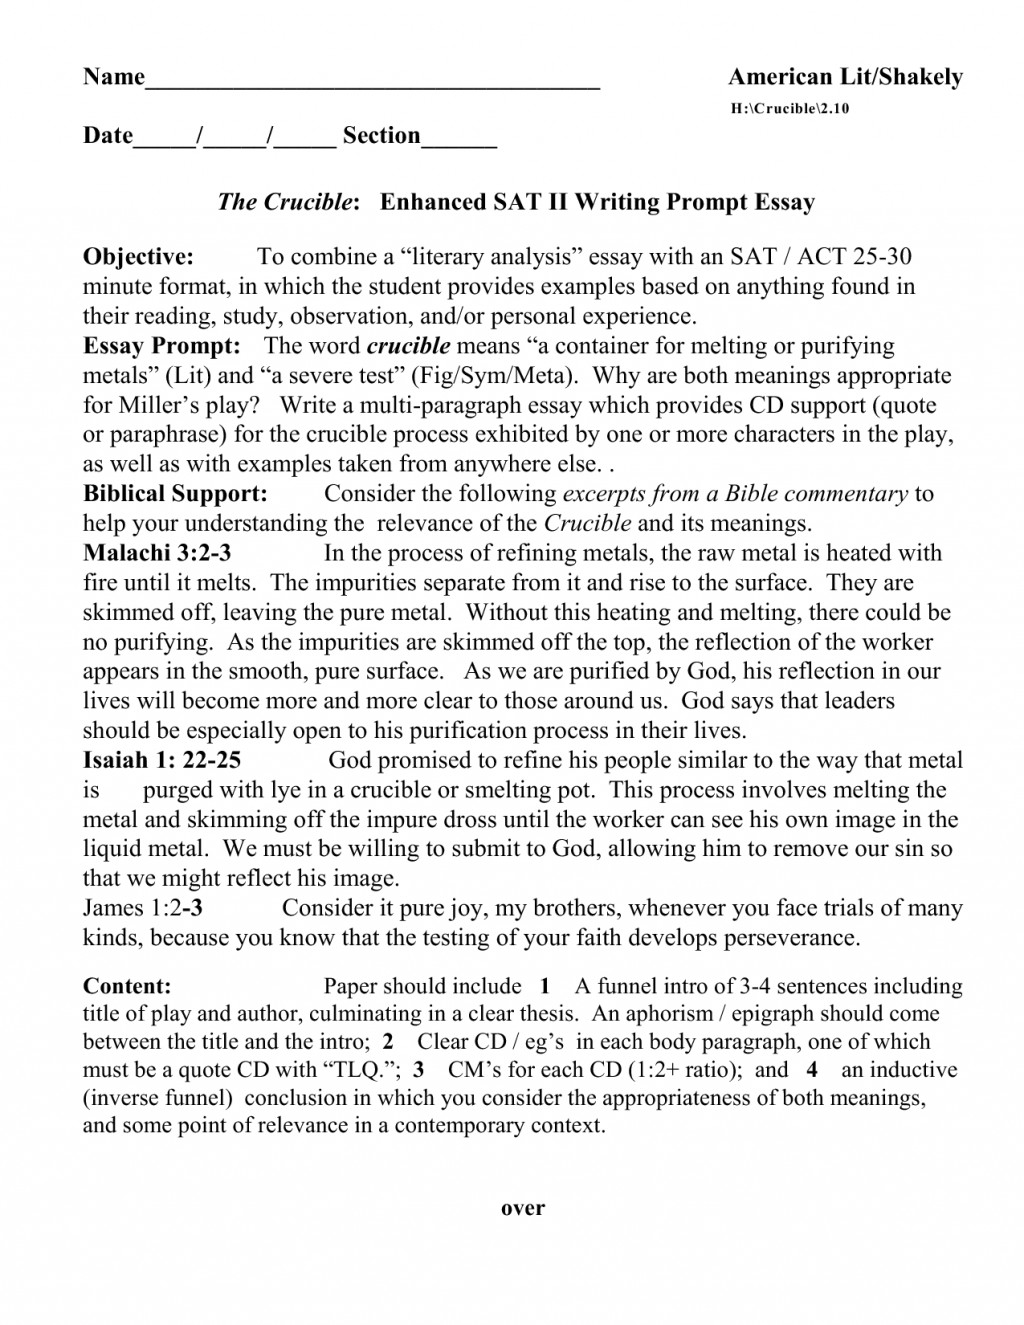 006 Sat Essay Practice Example Quotes Quotesgram Is There An On The L Exceptional Test 8 4 Large